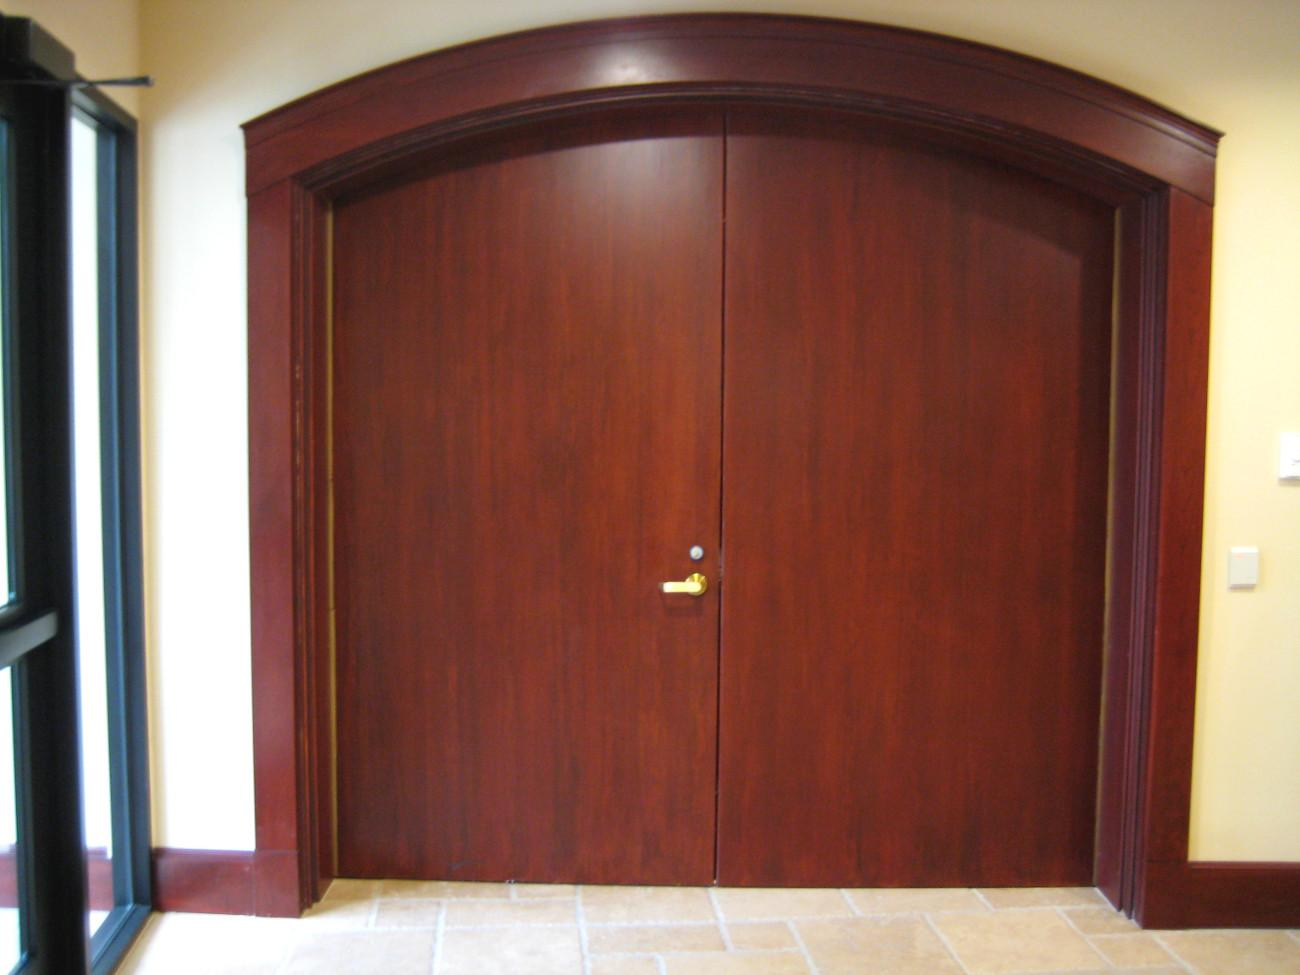 Wooden Fire Rated Doors 60 Min & Seal Strip Door Frame Wooden Door Frame | deltafiresafety@hotmail.com.